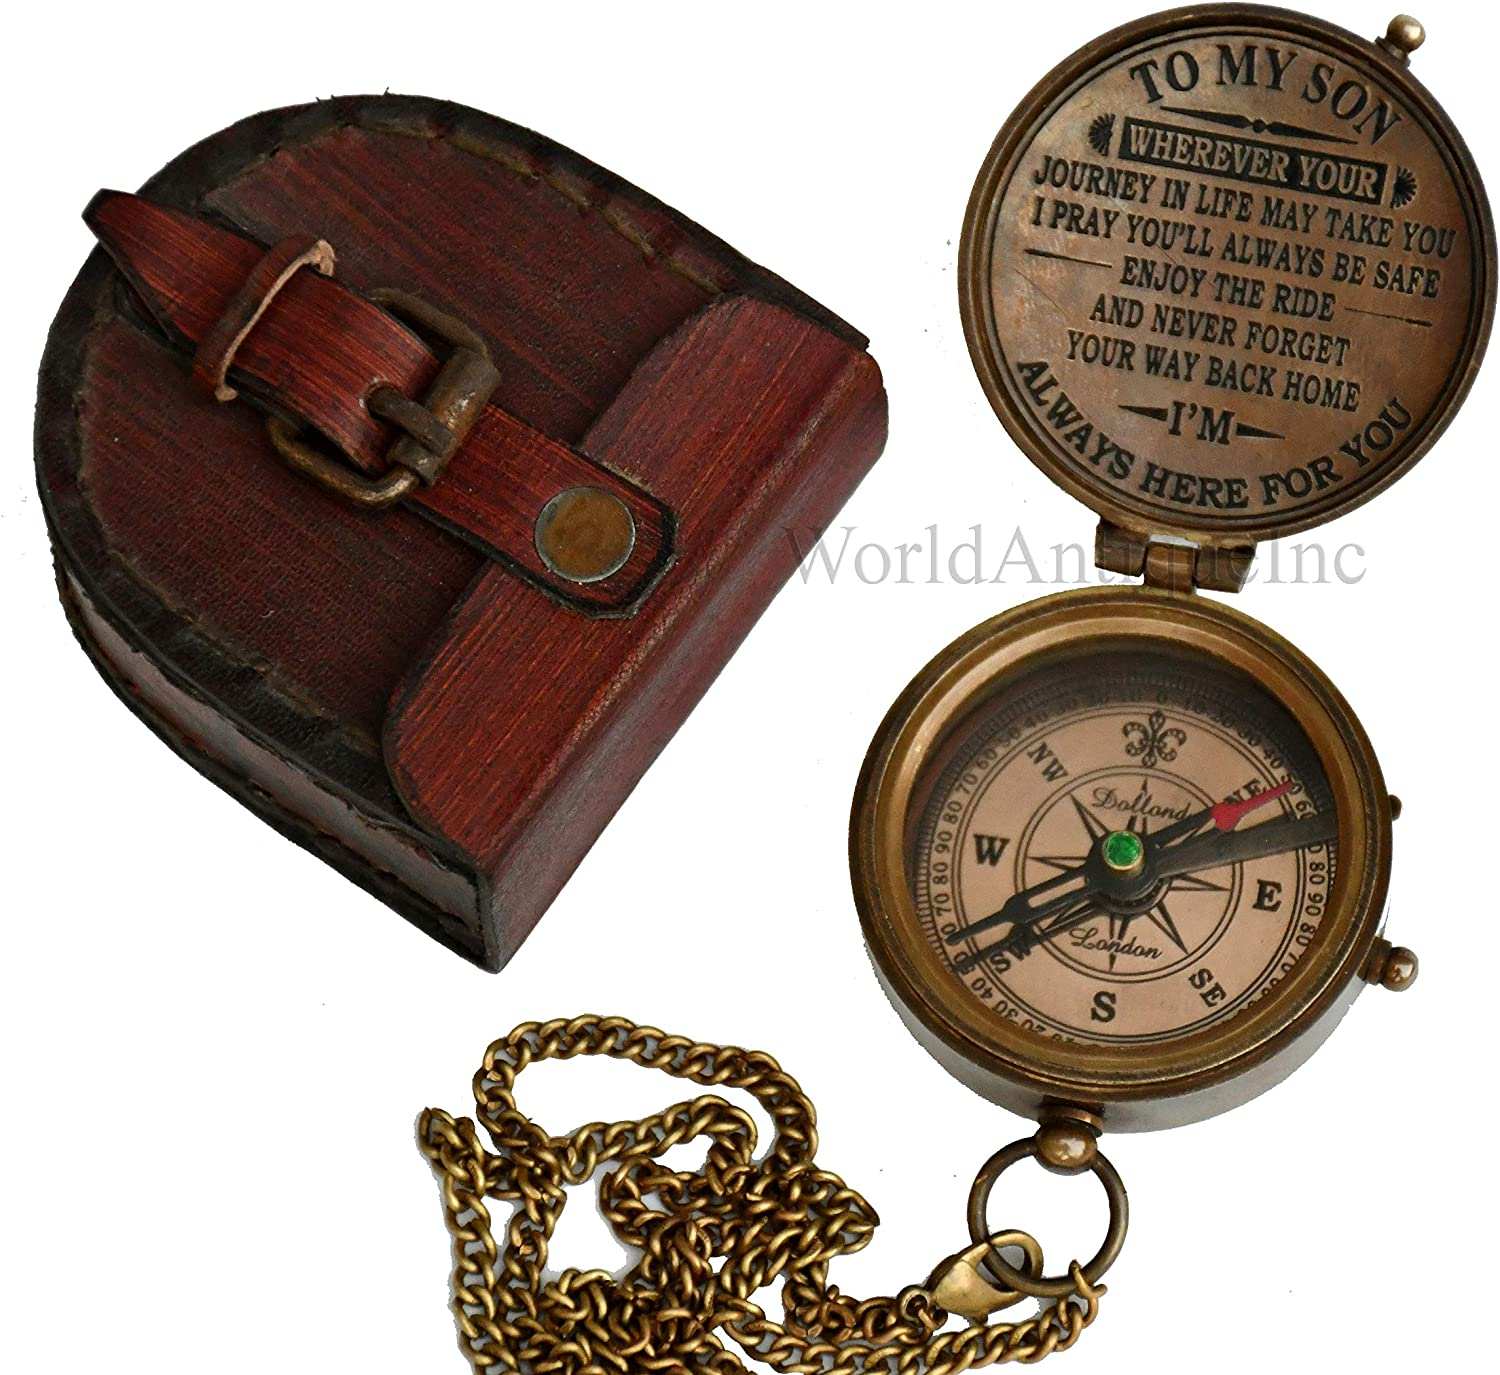 to My Son Personalized Compass with Case//Gift for Son//to My Son Gifts//Mom to Son Gift